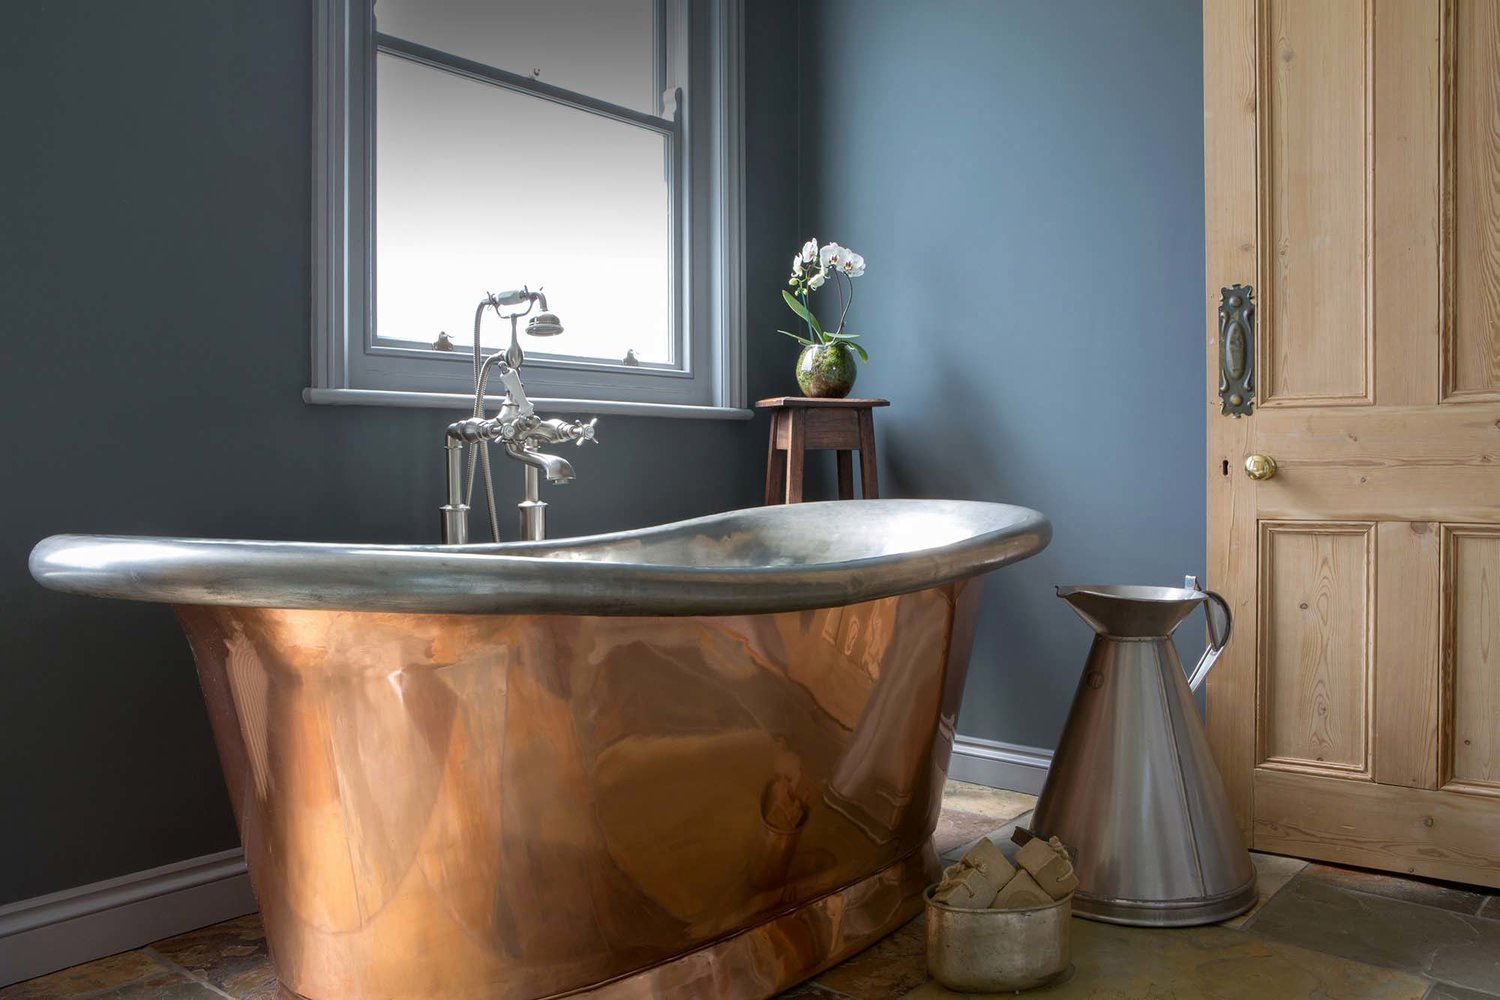 interiors — julia toms photography